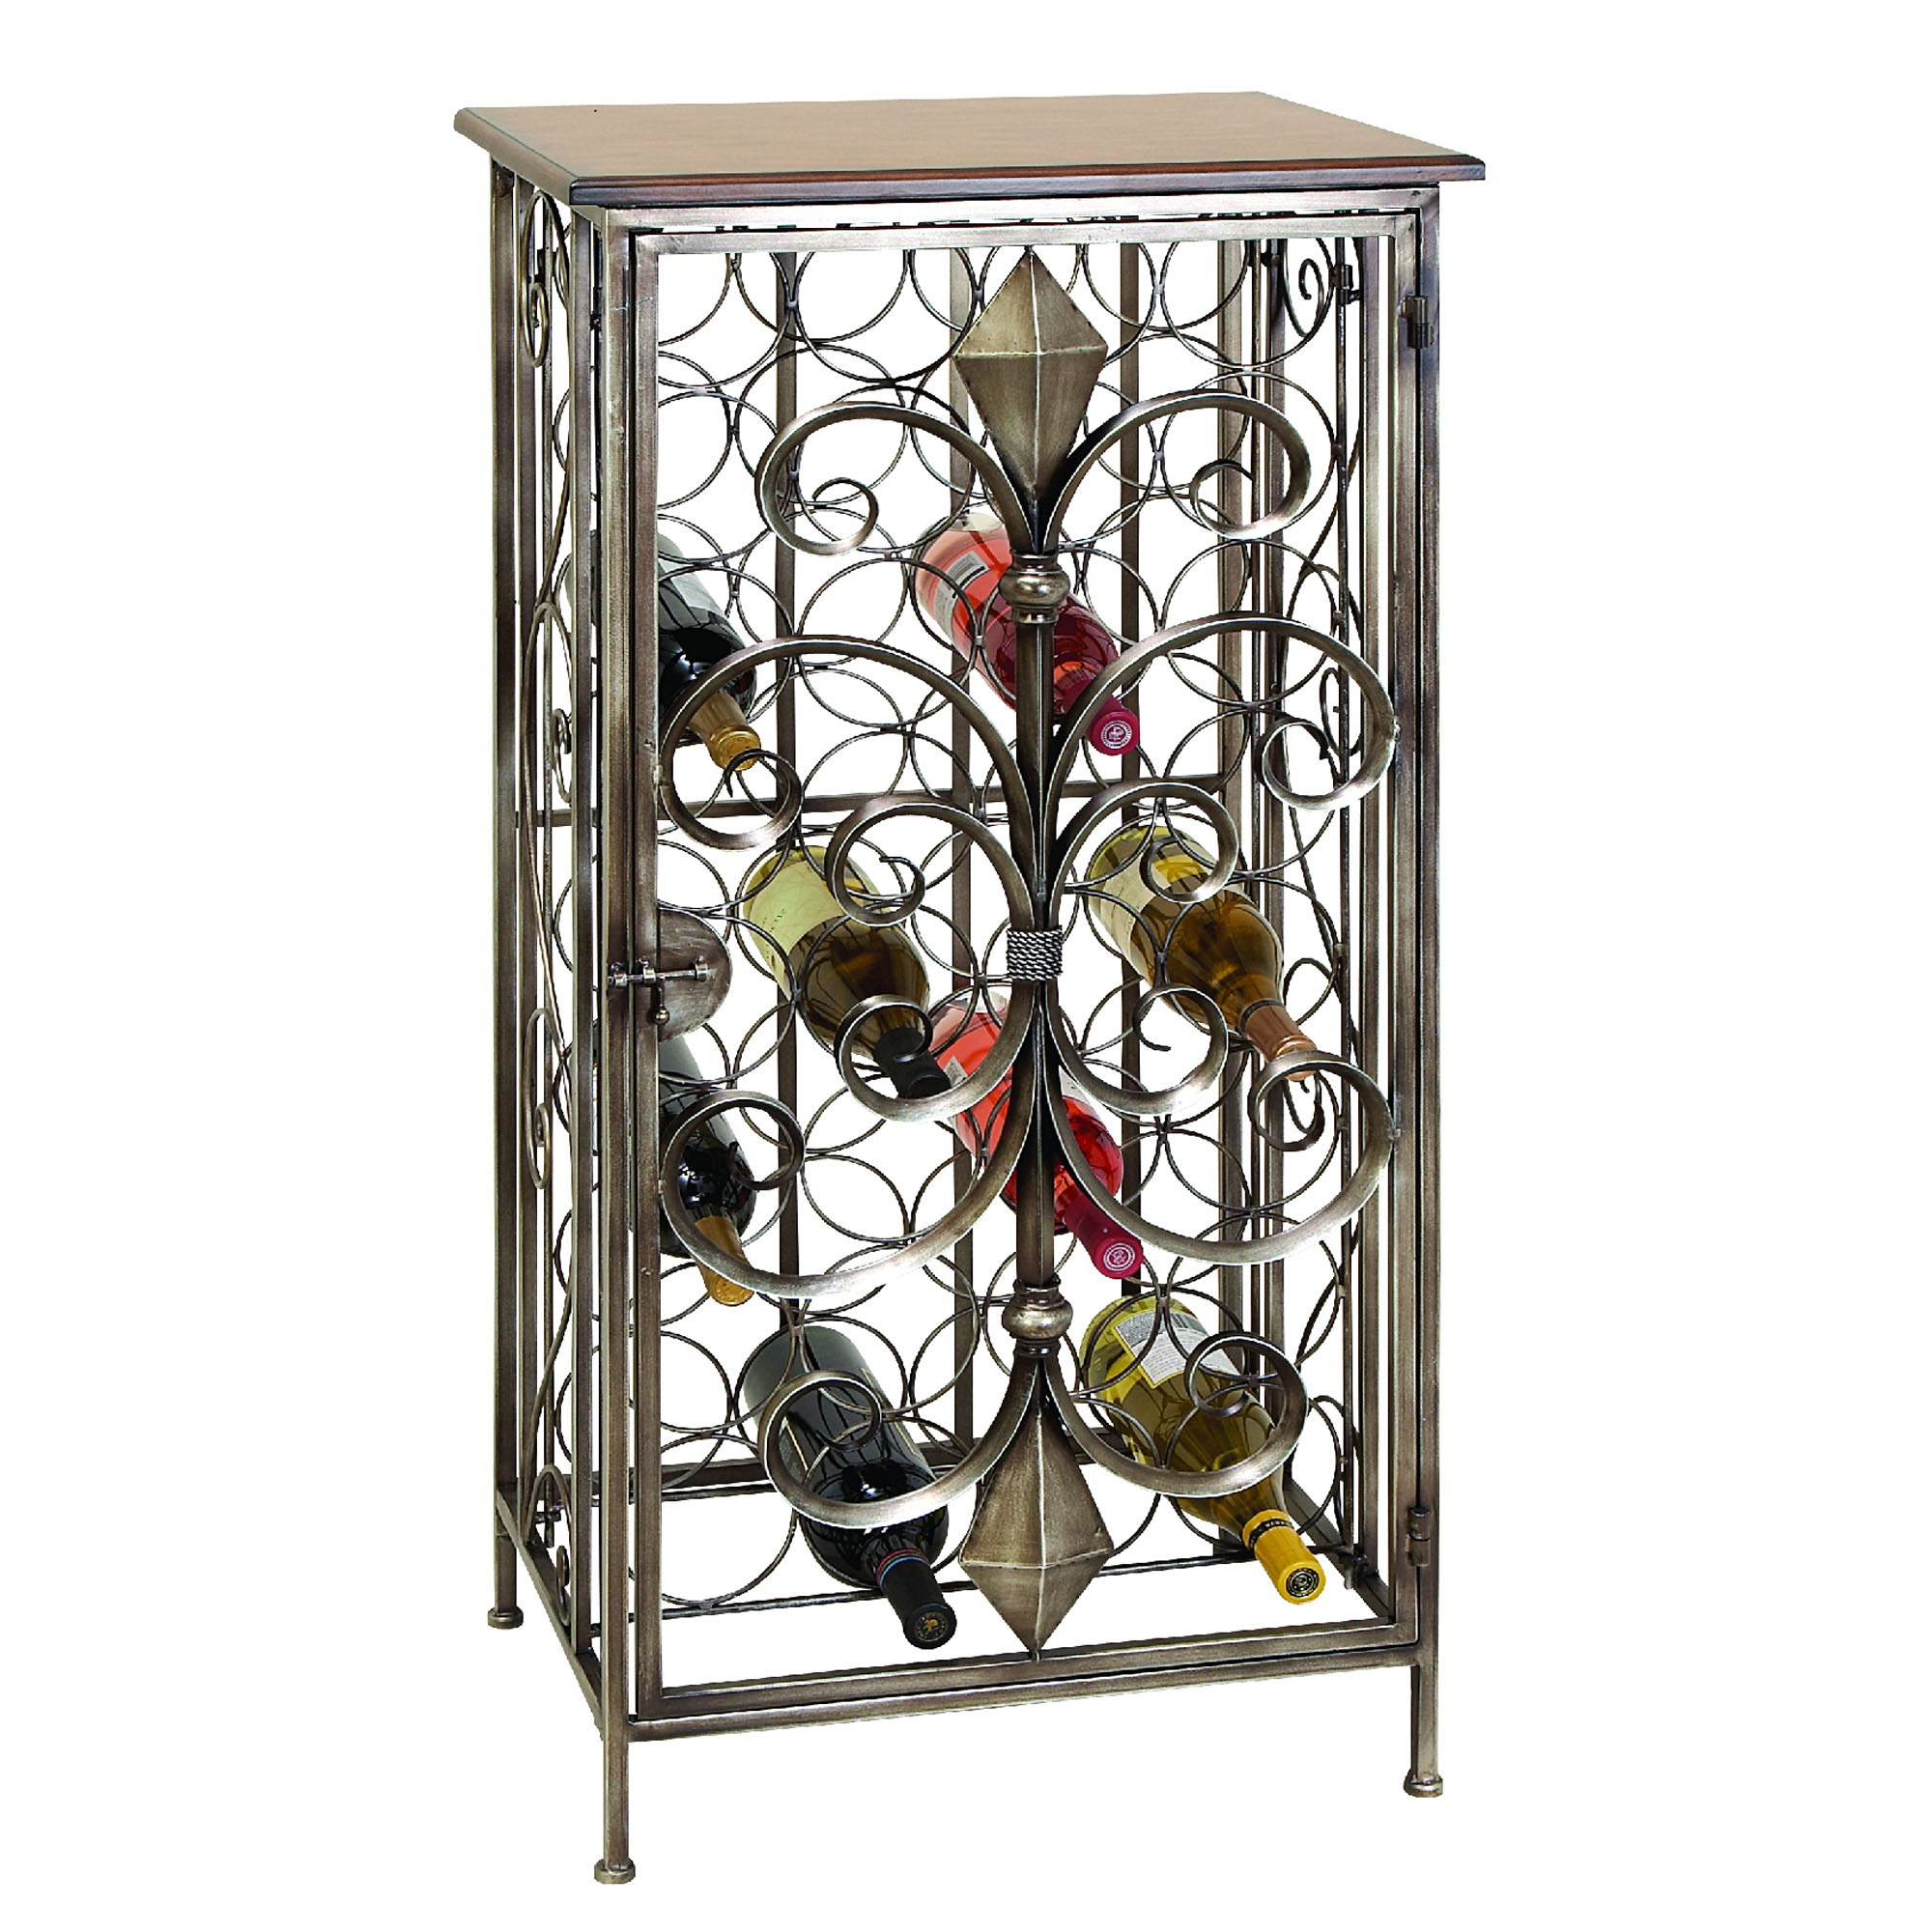 Best of Wine Rack Table Ideas